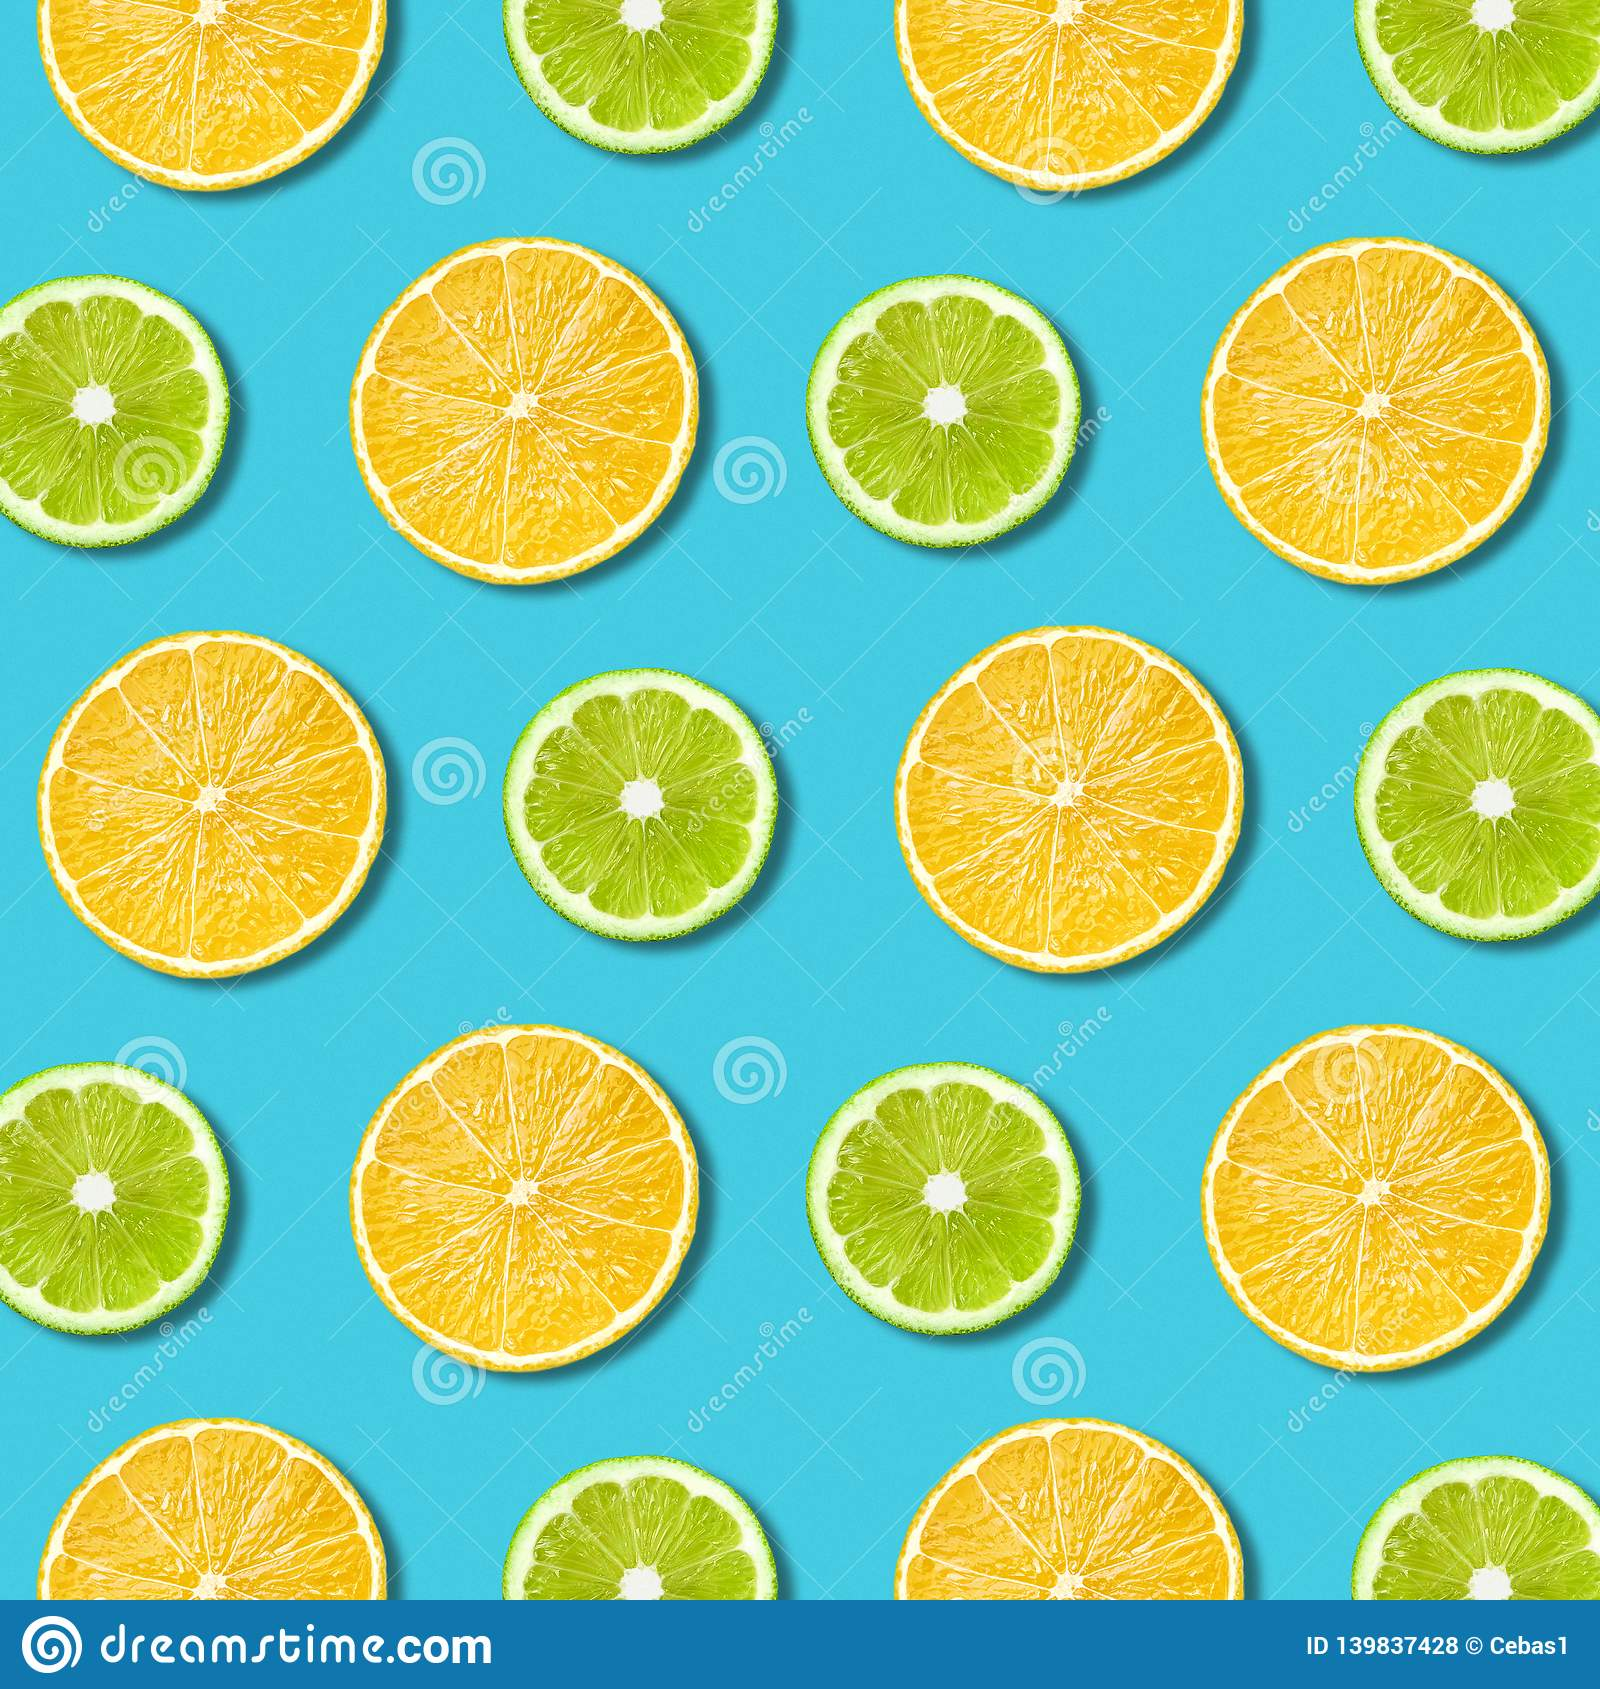 Vibrant lemon and green lime slices texture on turquoise background